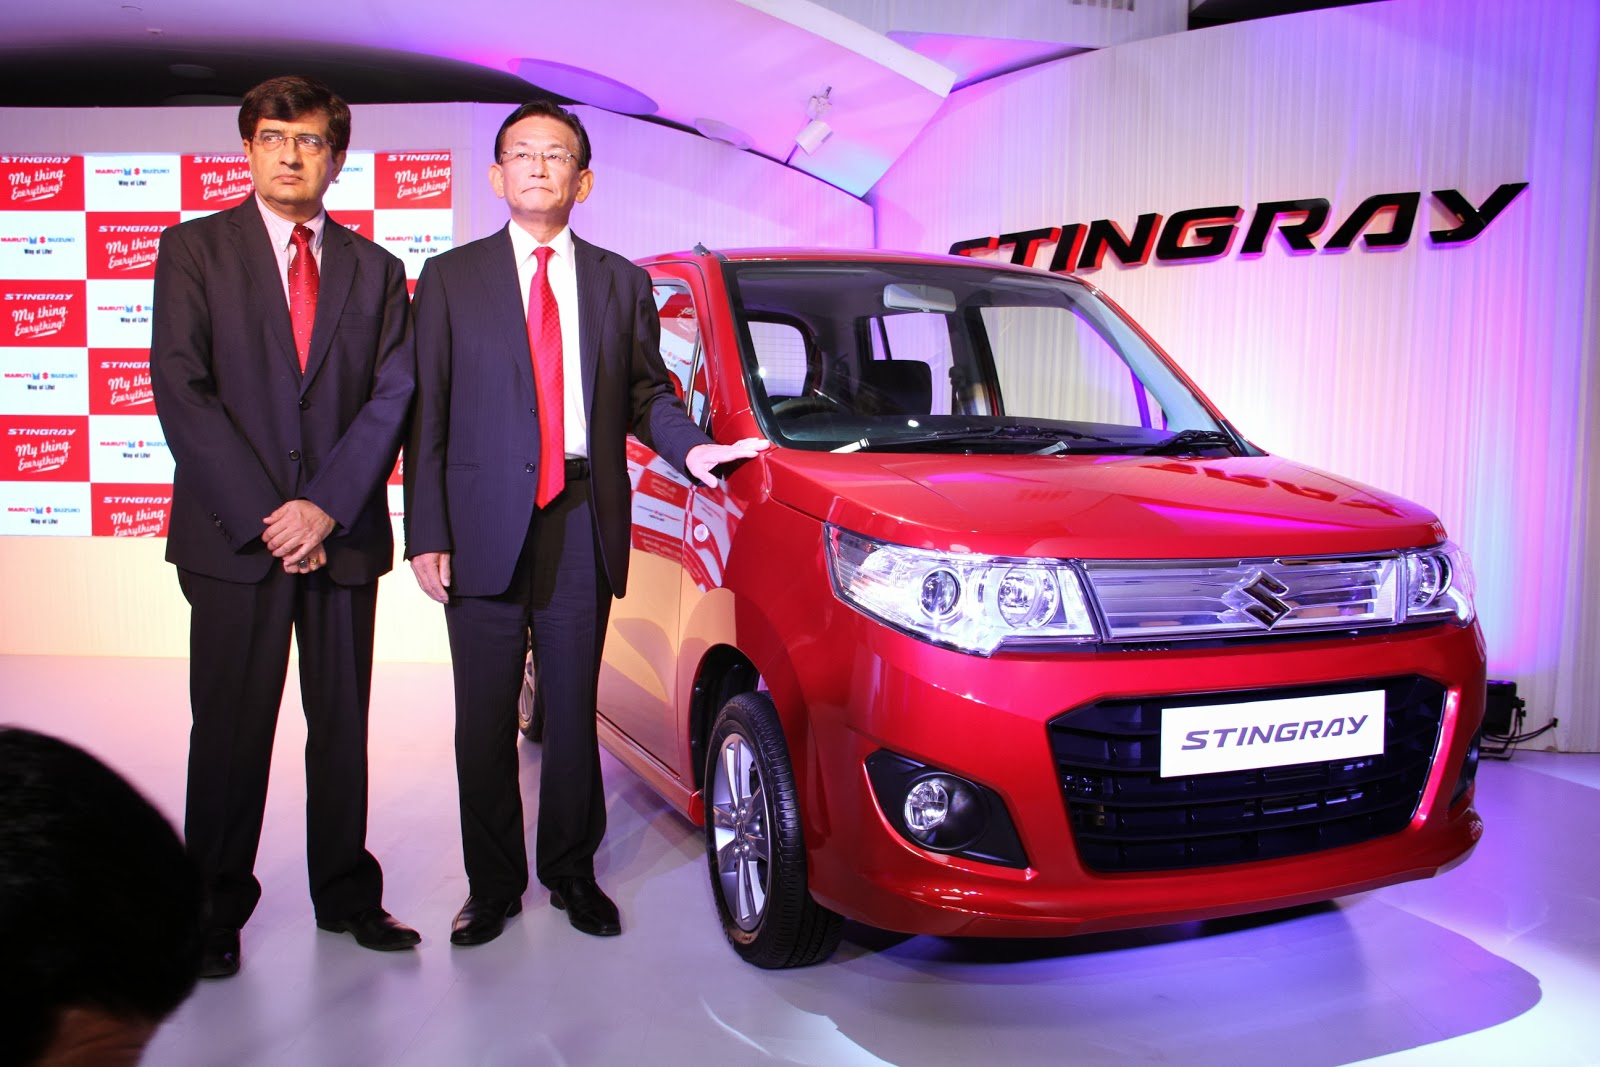 business ethics oadopted by maruti suzuki india lmt